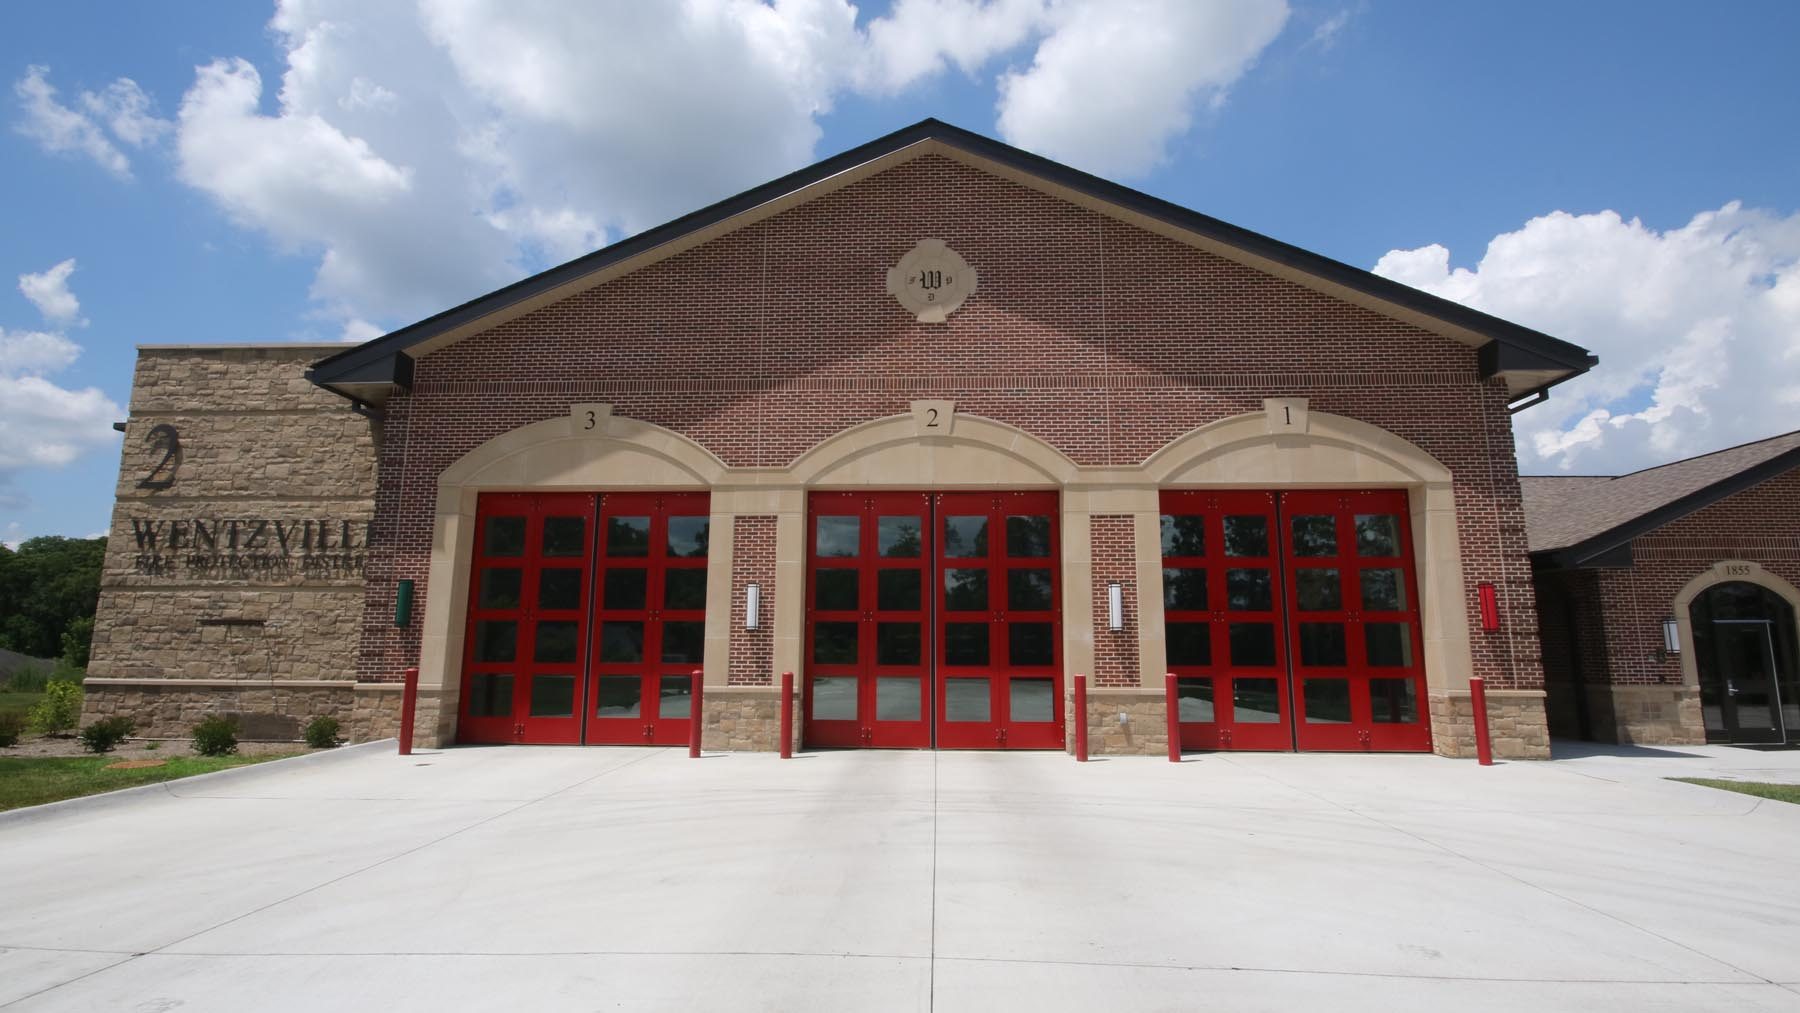 Wentzville Fire Station